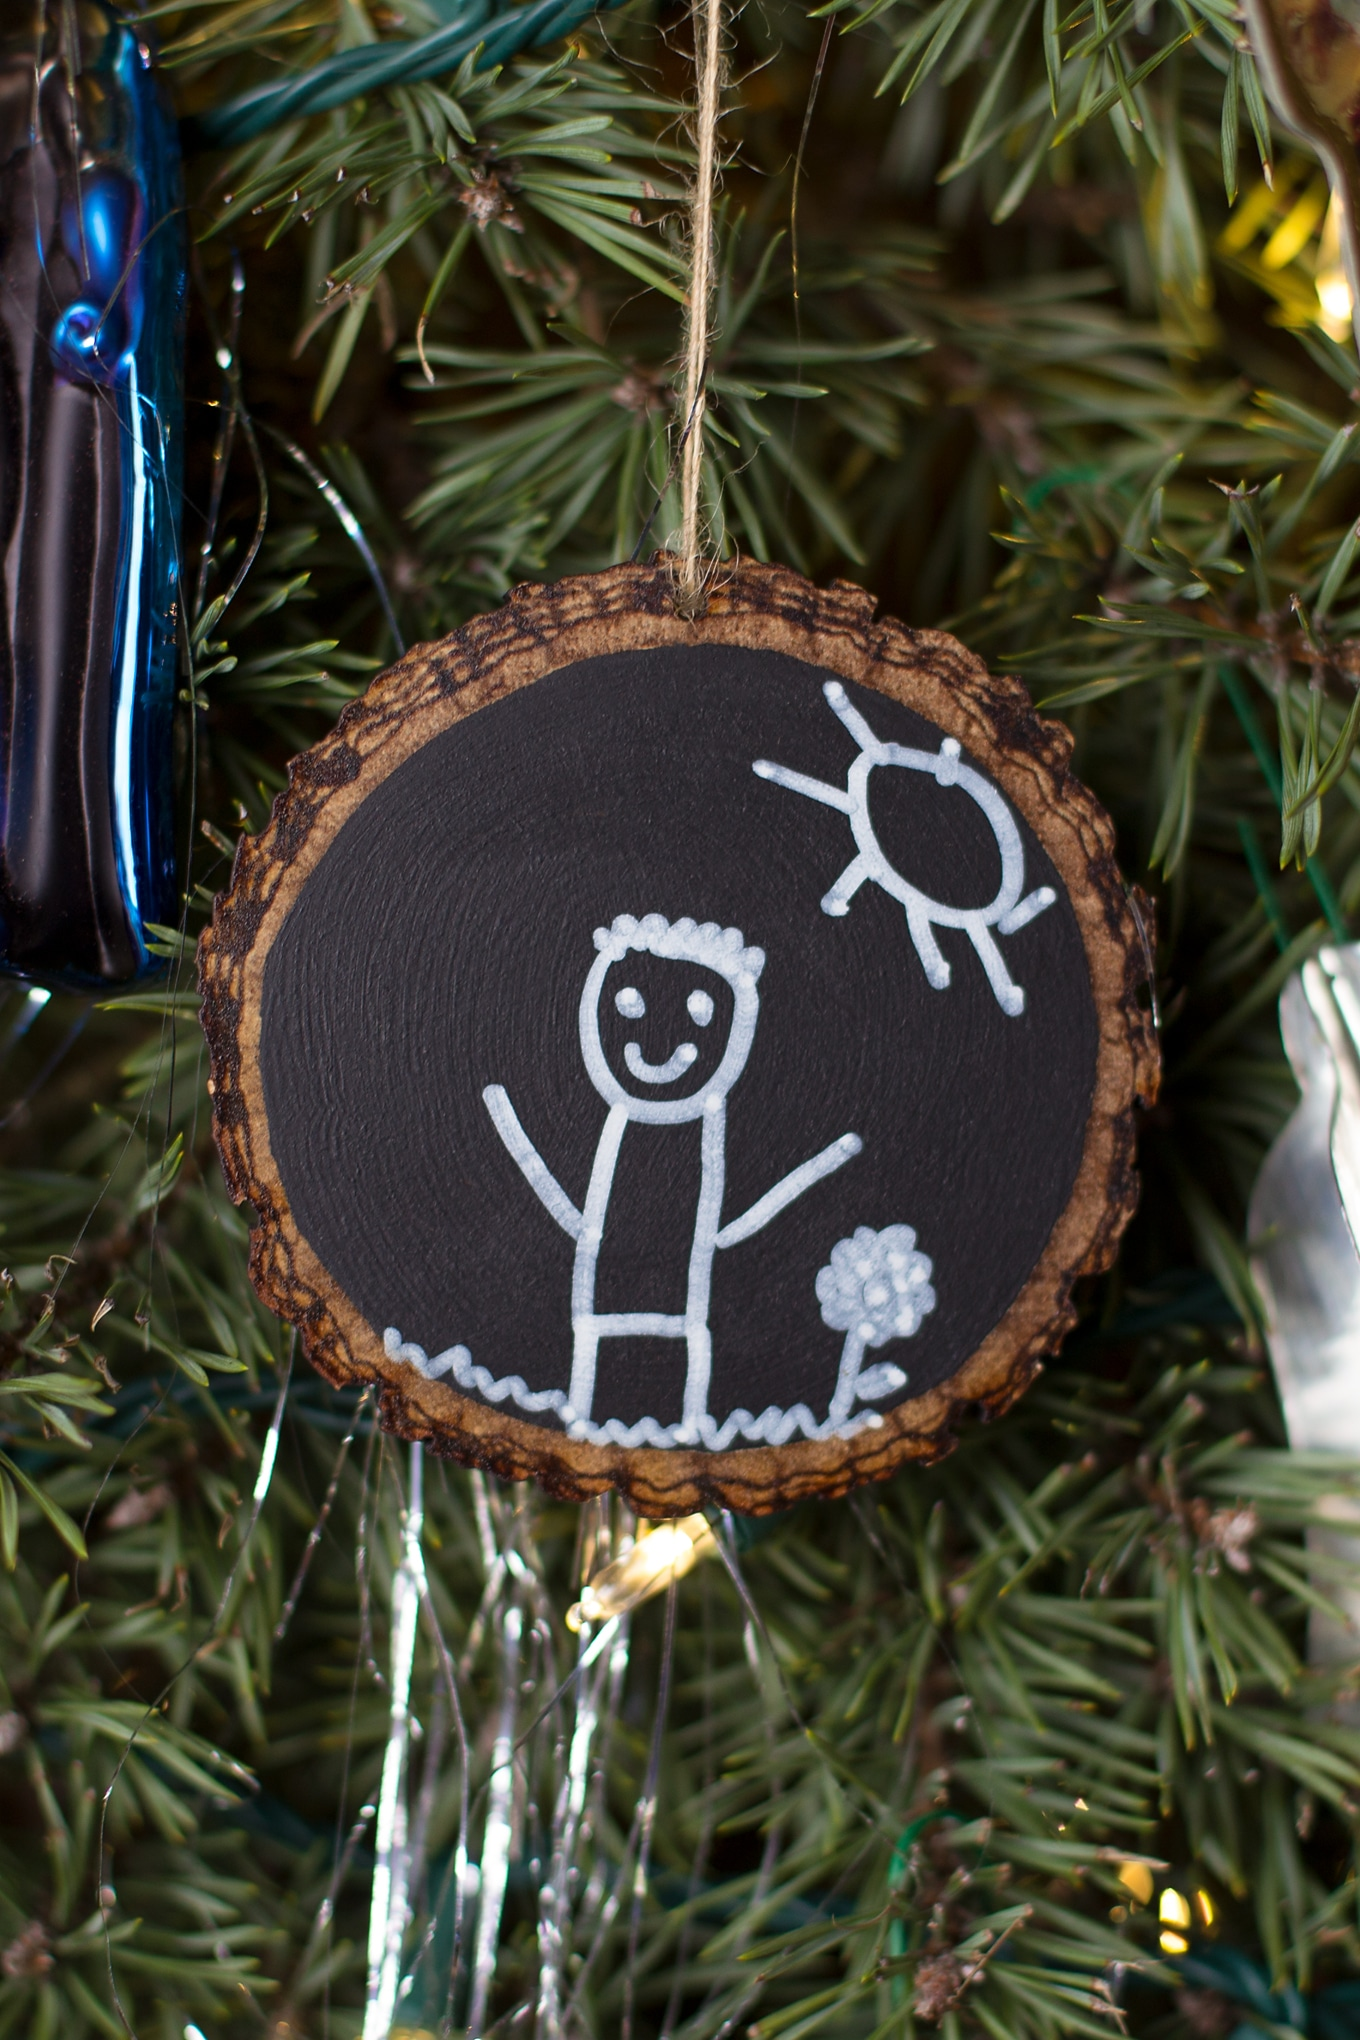 Easy and Fun DIY Chalkboard Ornament Hanging on Christmas Tree